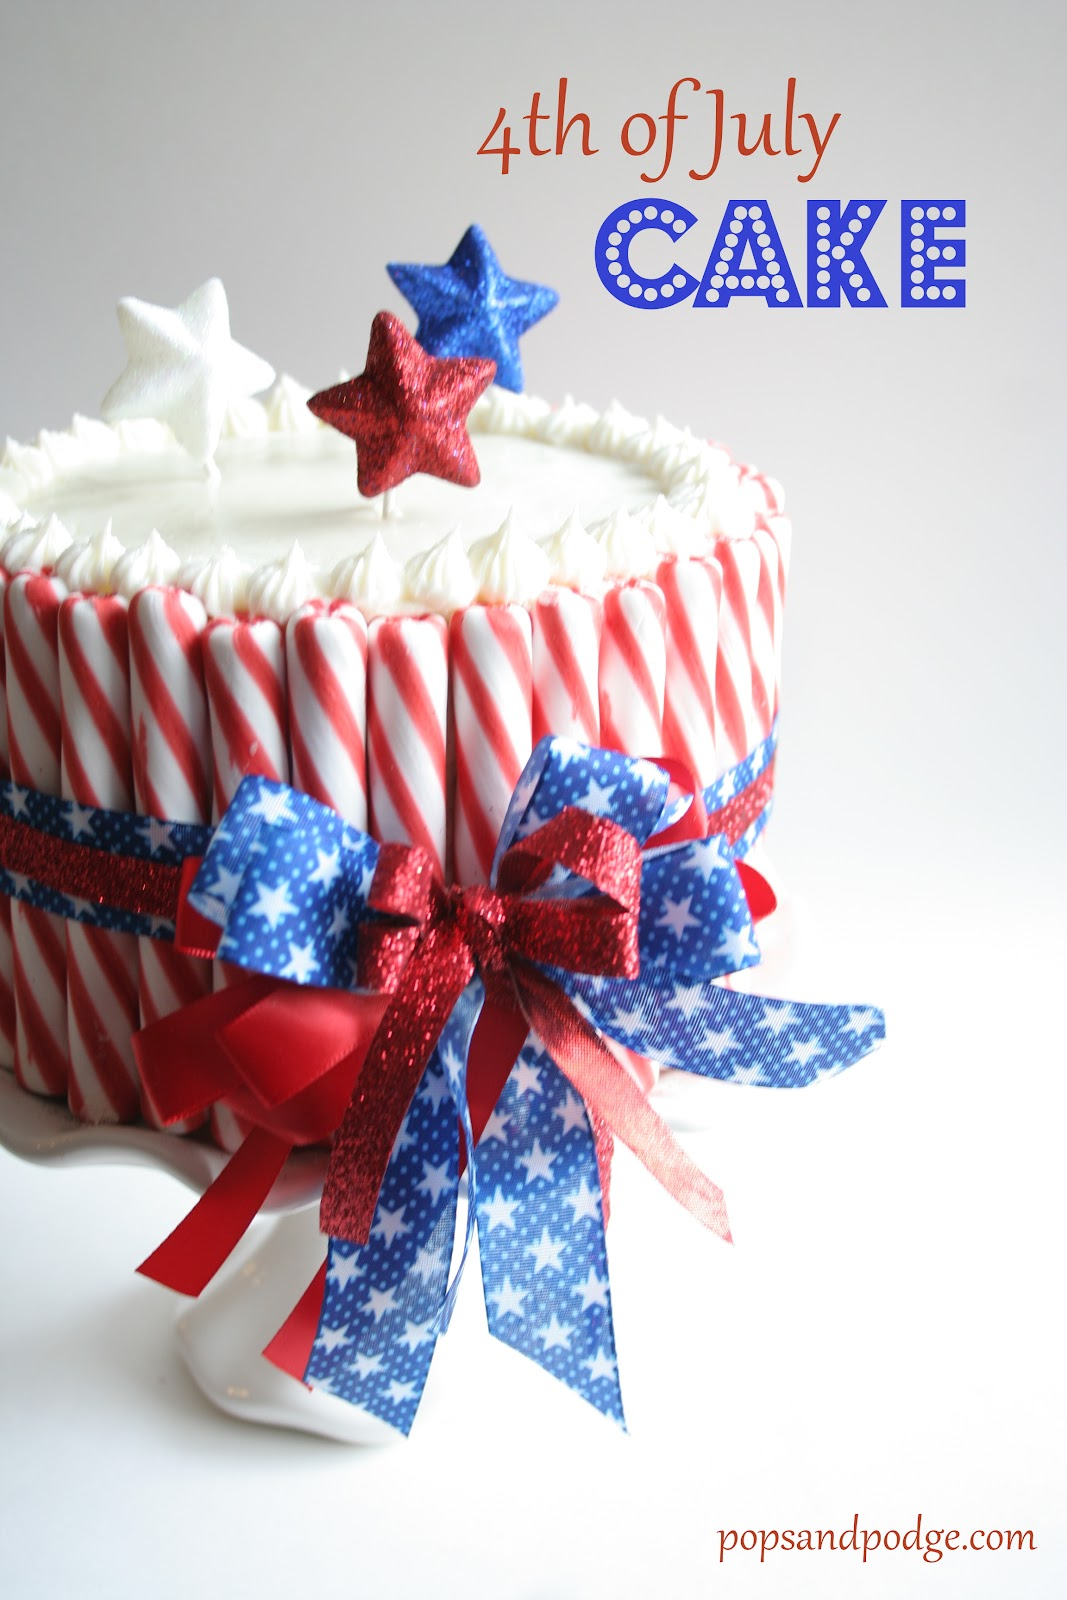 the 4th of july cake